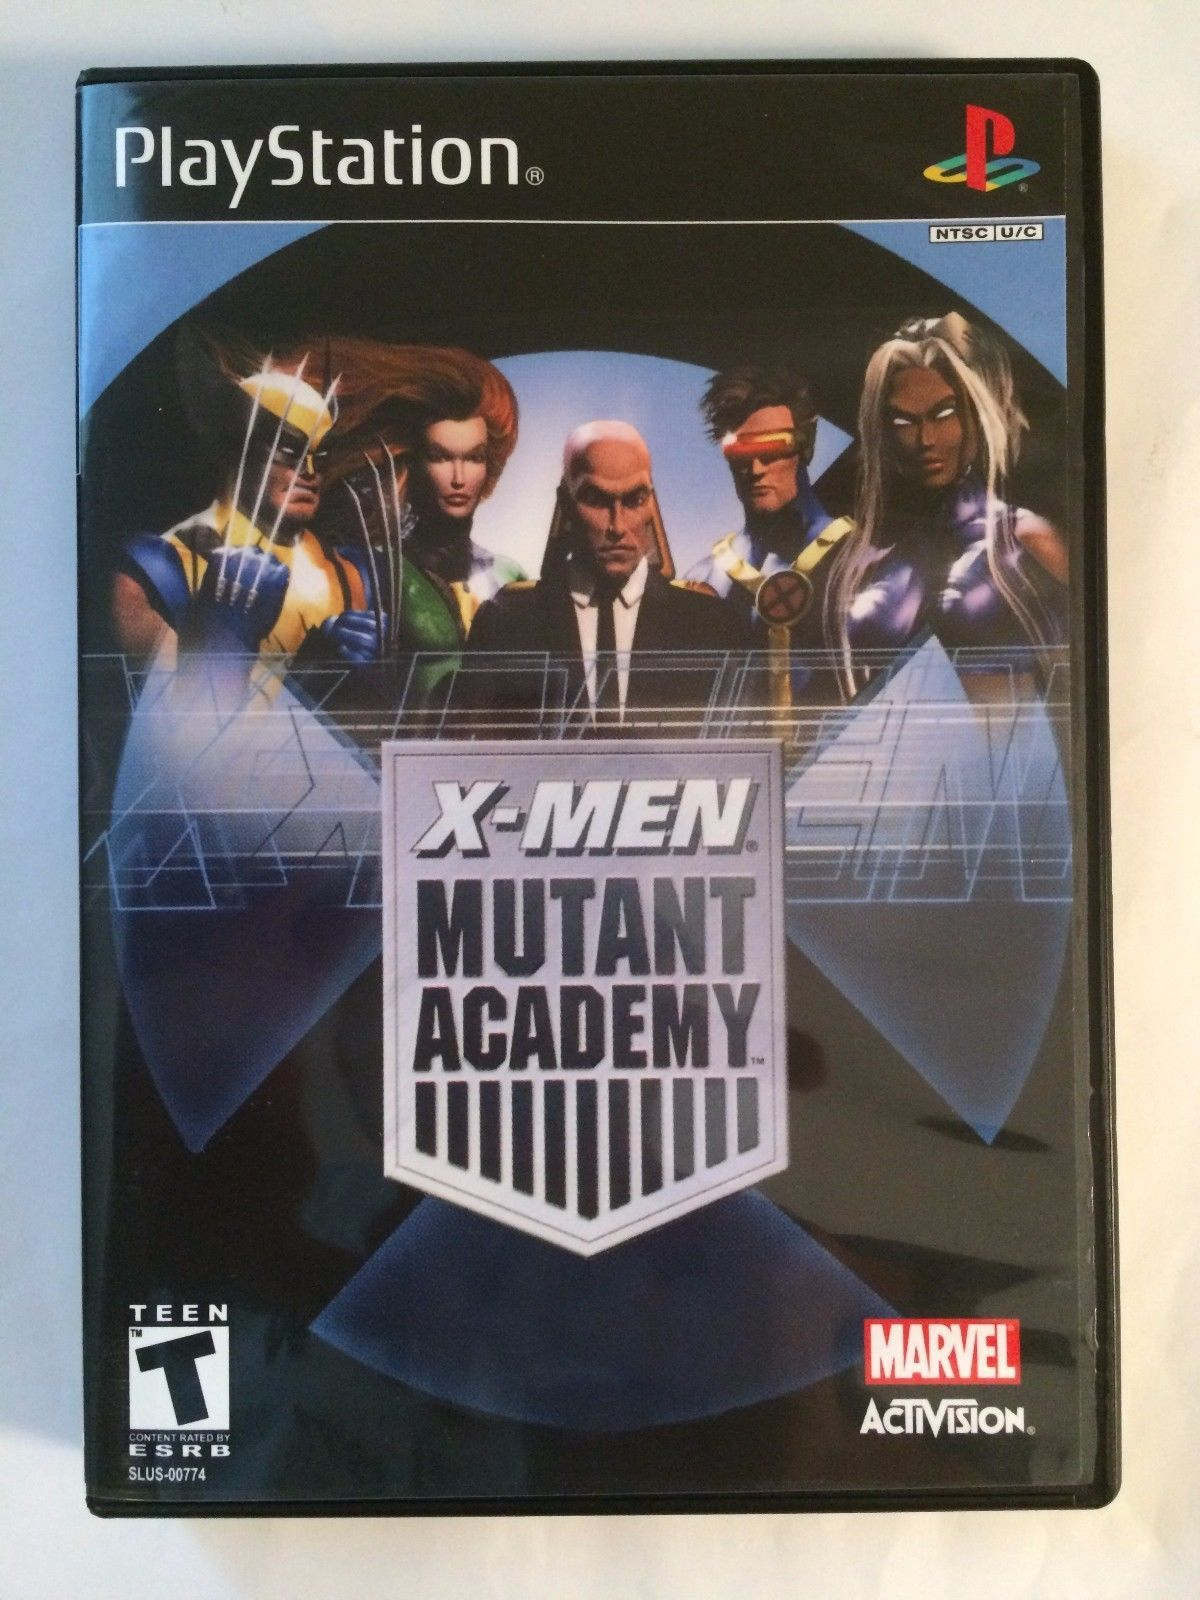 X-Men Mutant Academy - Playstation - Replacement Case - No Game